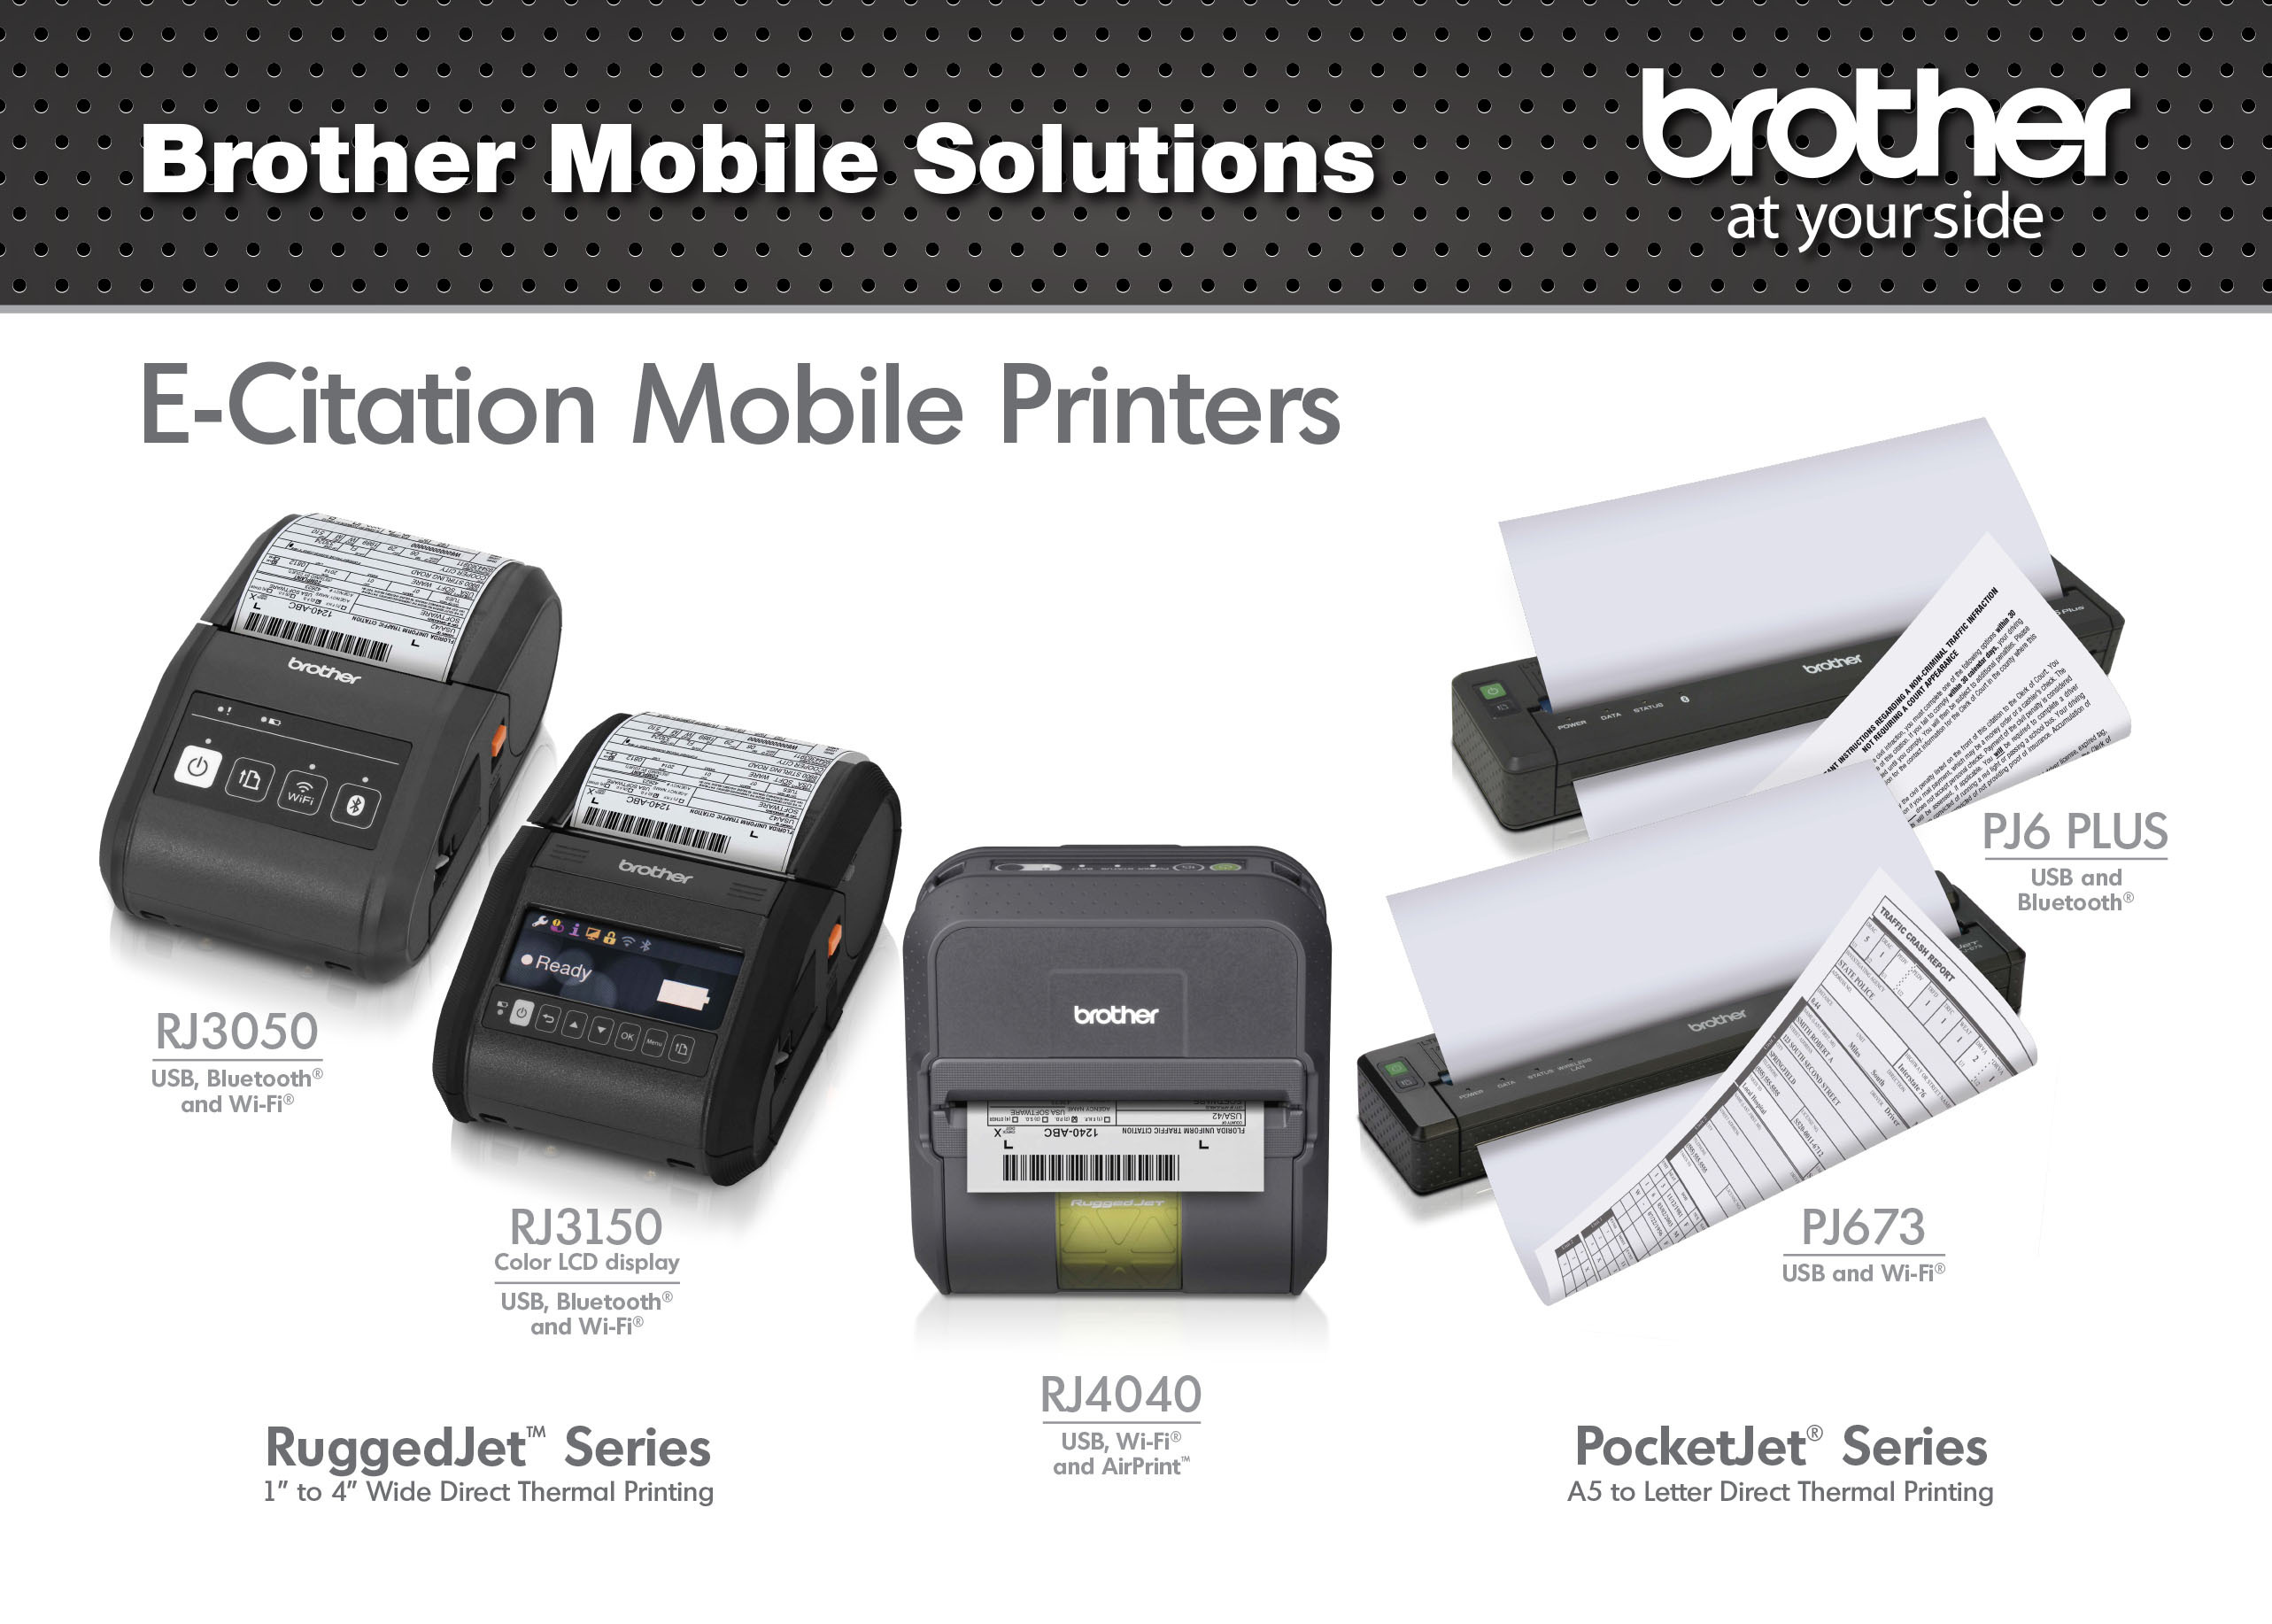 Full-page PocketJet(R) and small-format RuggedJet(R) mobile printers